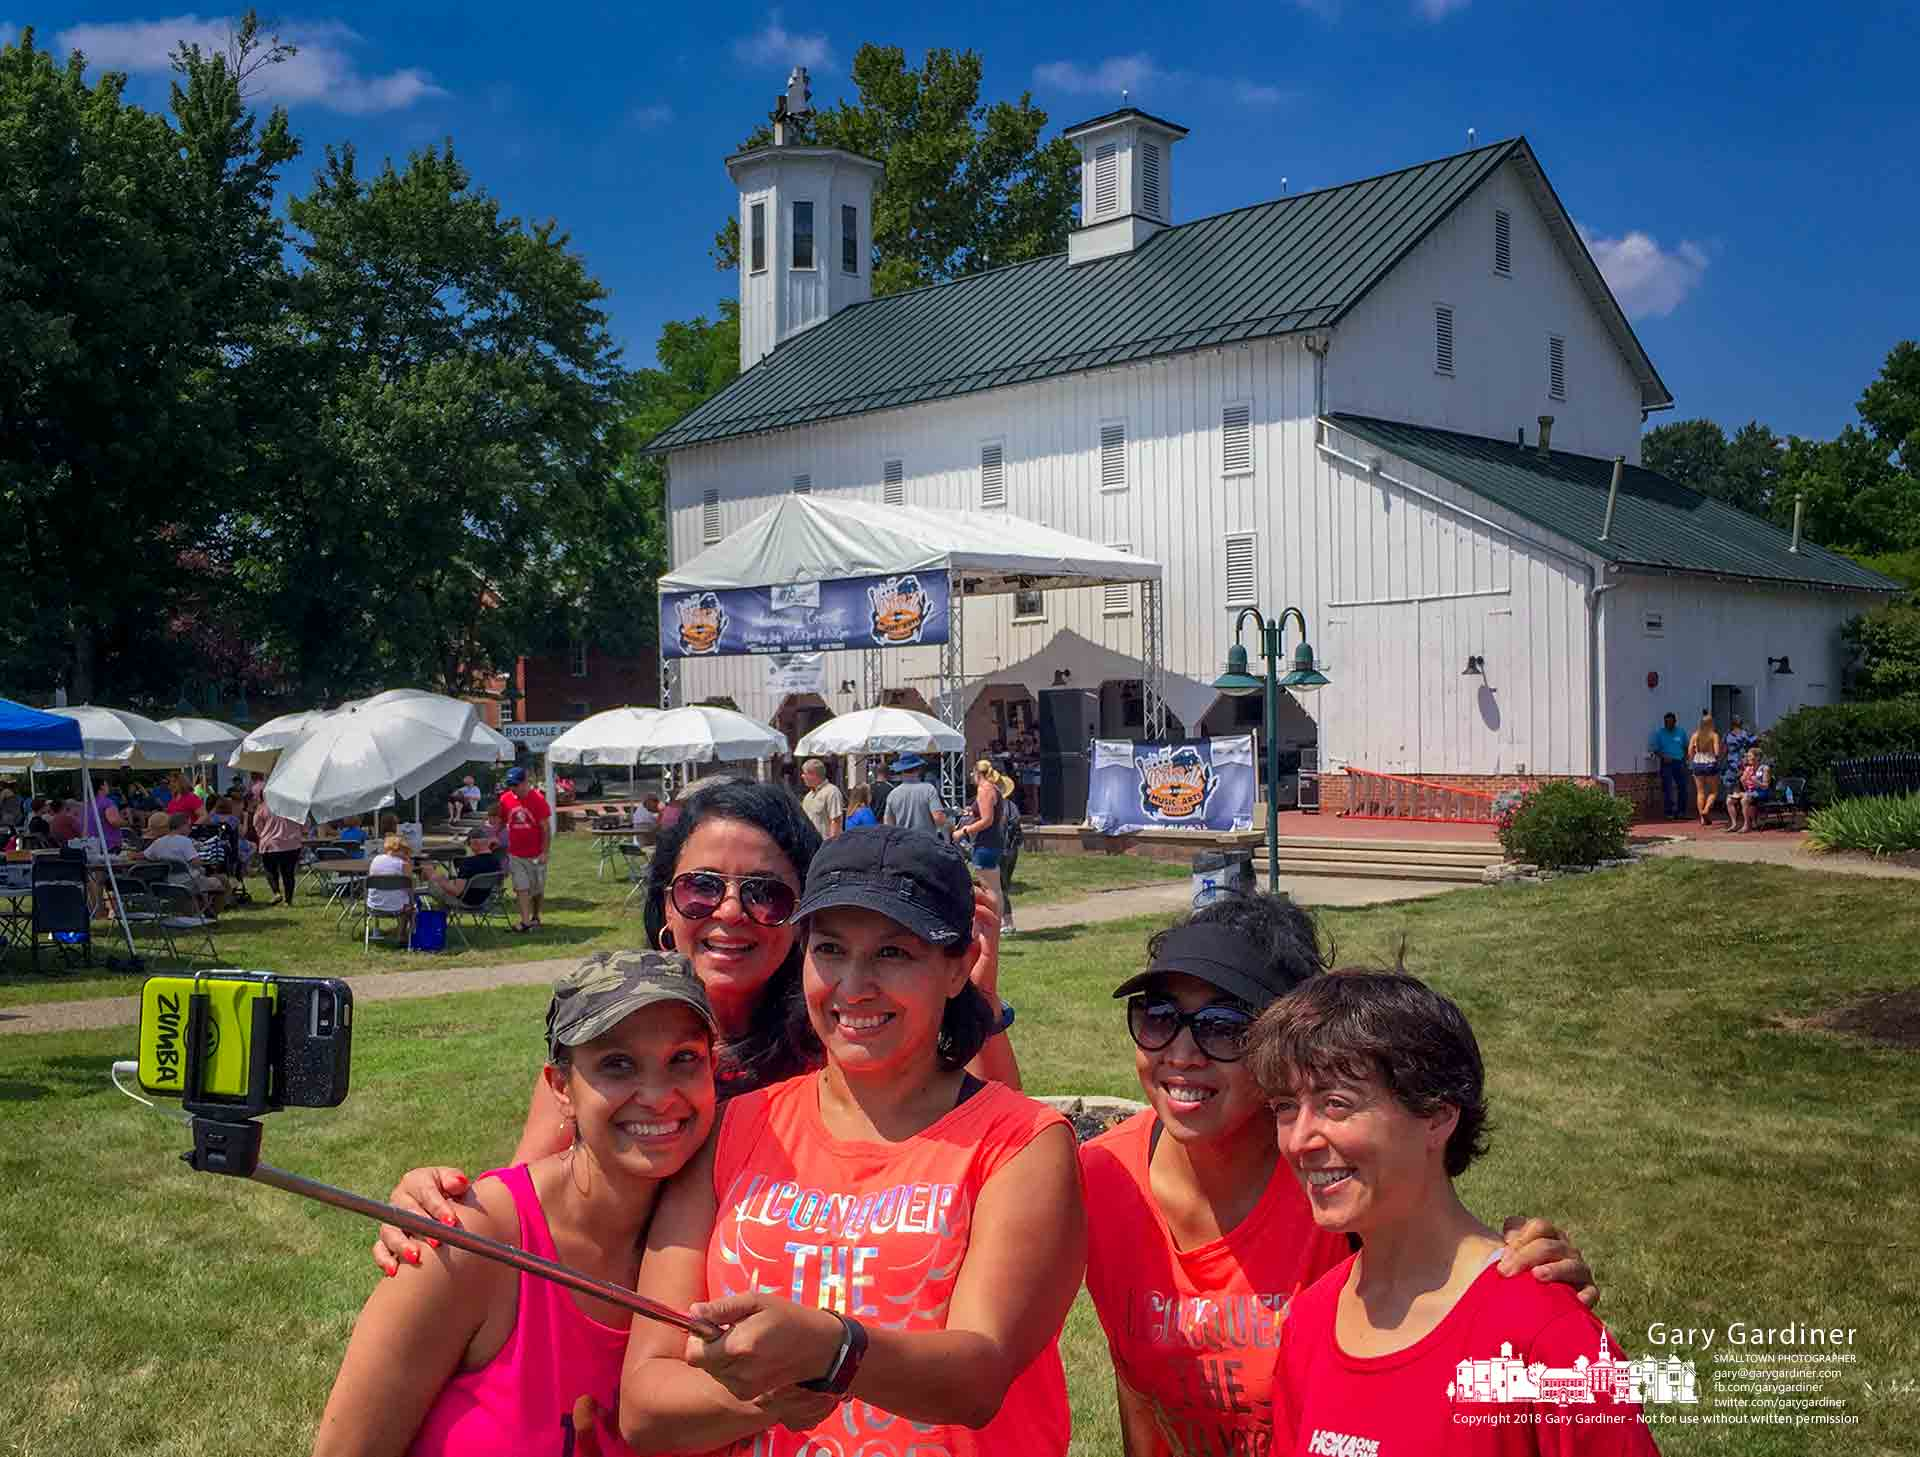 The Weaver family poses for a selfie in front of the Everal Barn during the first hours of the Westerville Music and Arts Festival at HeritagePark. My Final Photo for July 14, 2018.